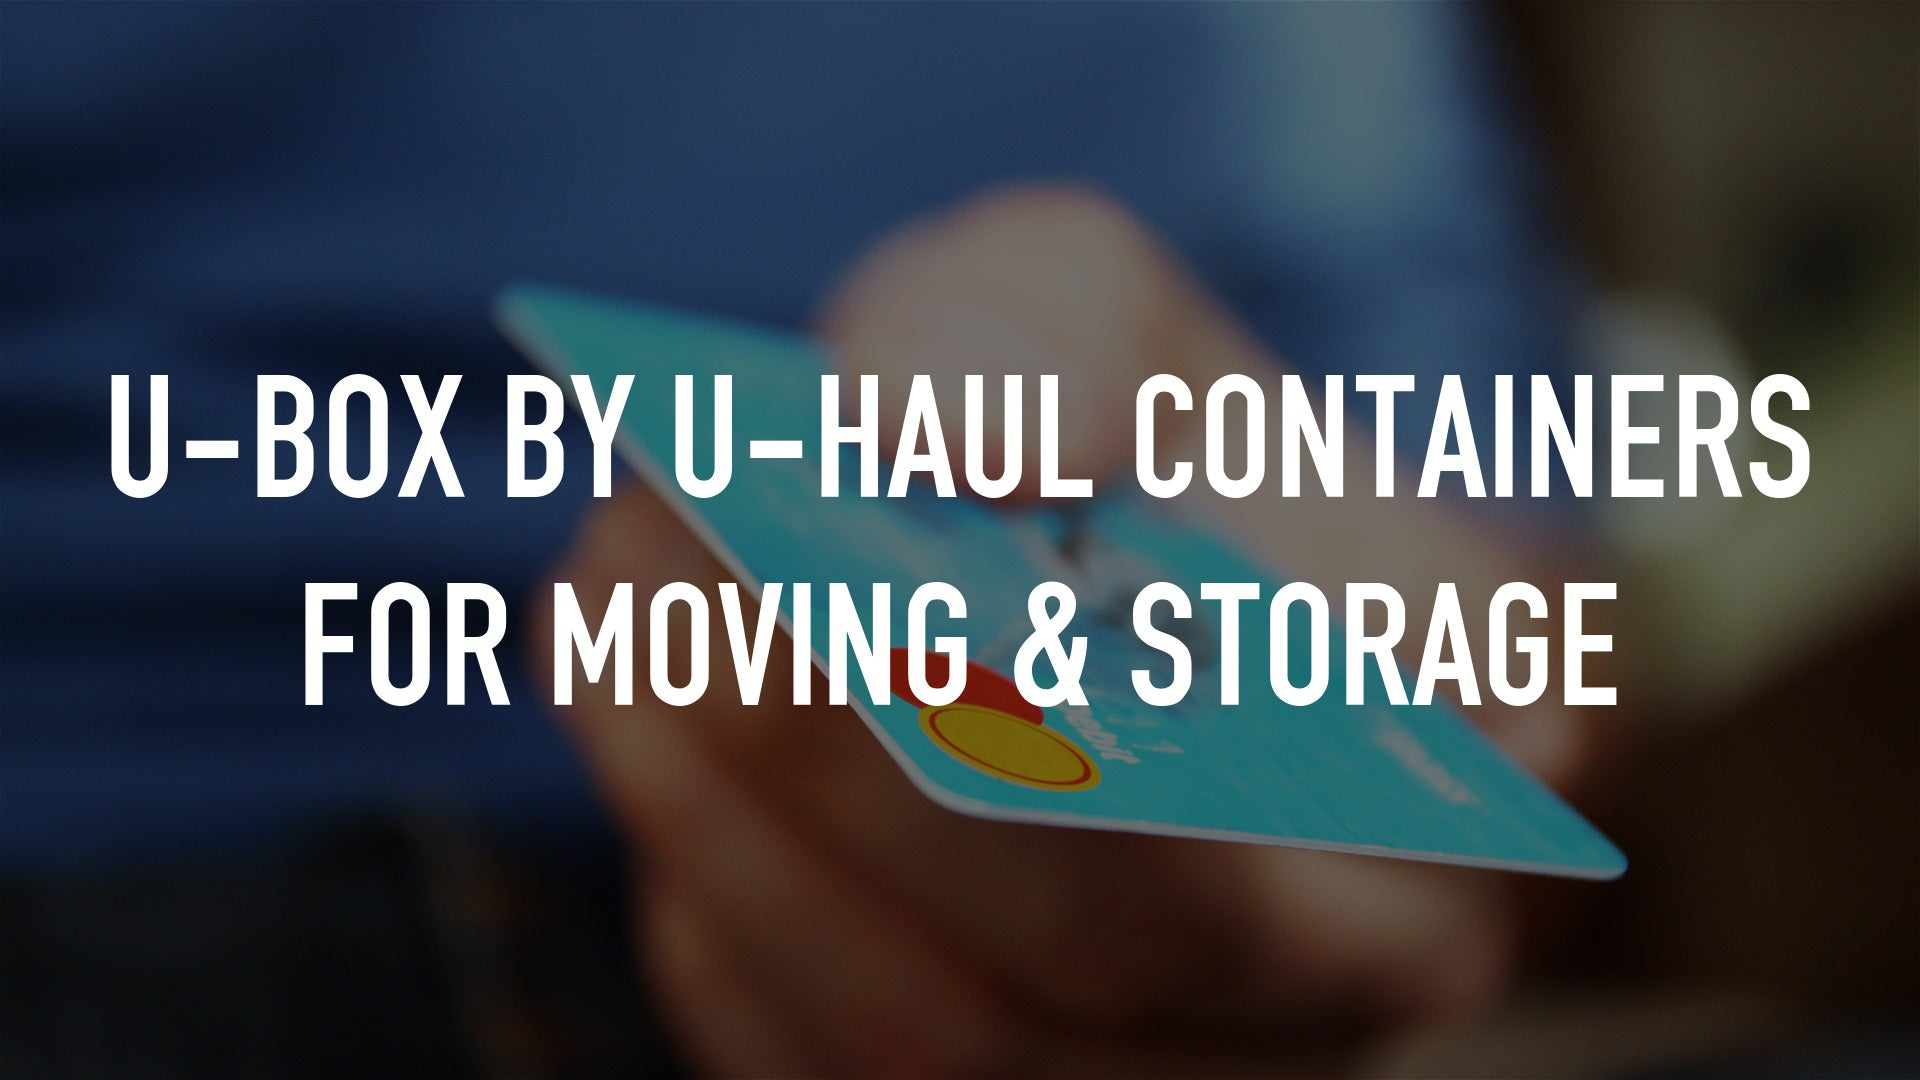 U-Box by U-Haul Containers for Moving & Storage